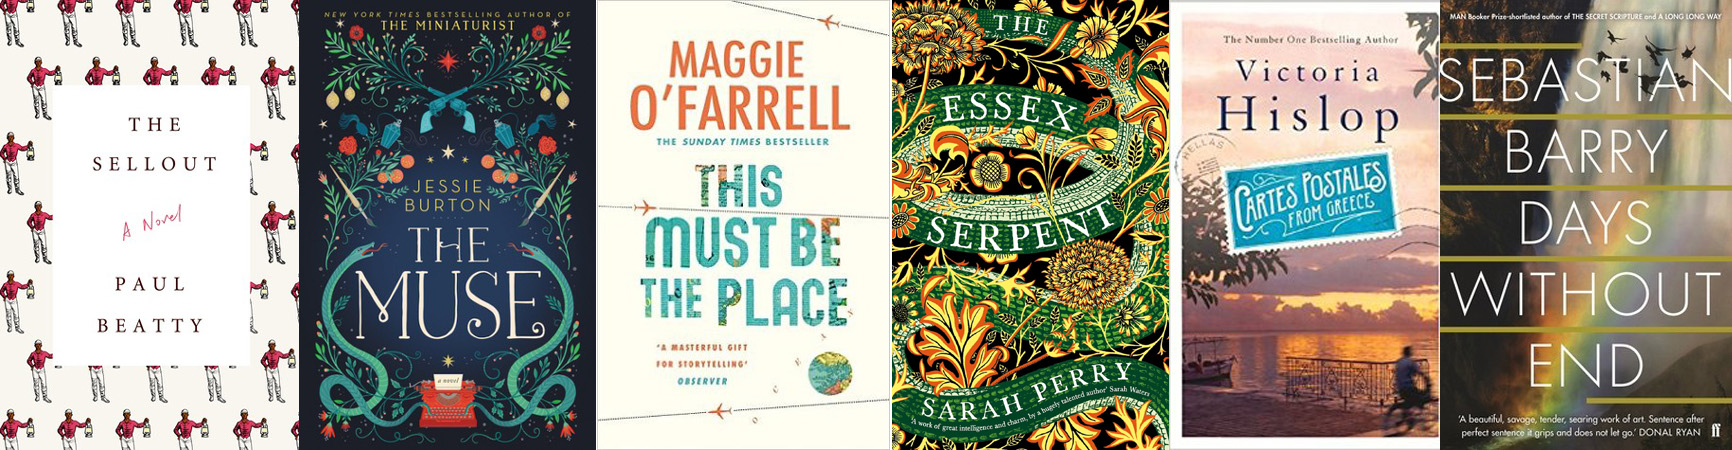 The British Book Awards / Nibbies 2017 Fiction Book of the Year Shortlist